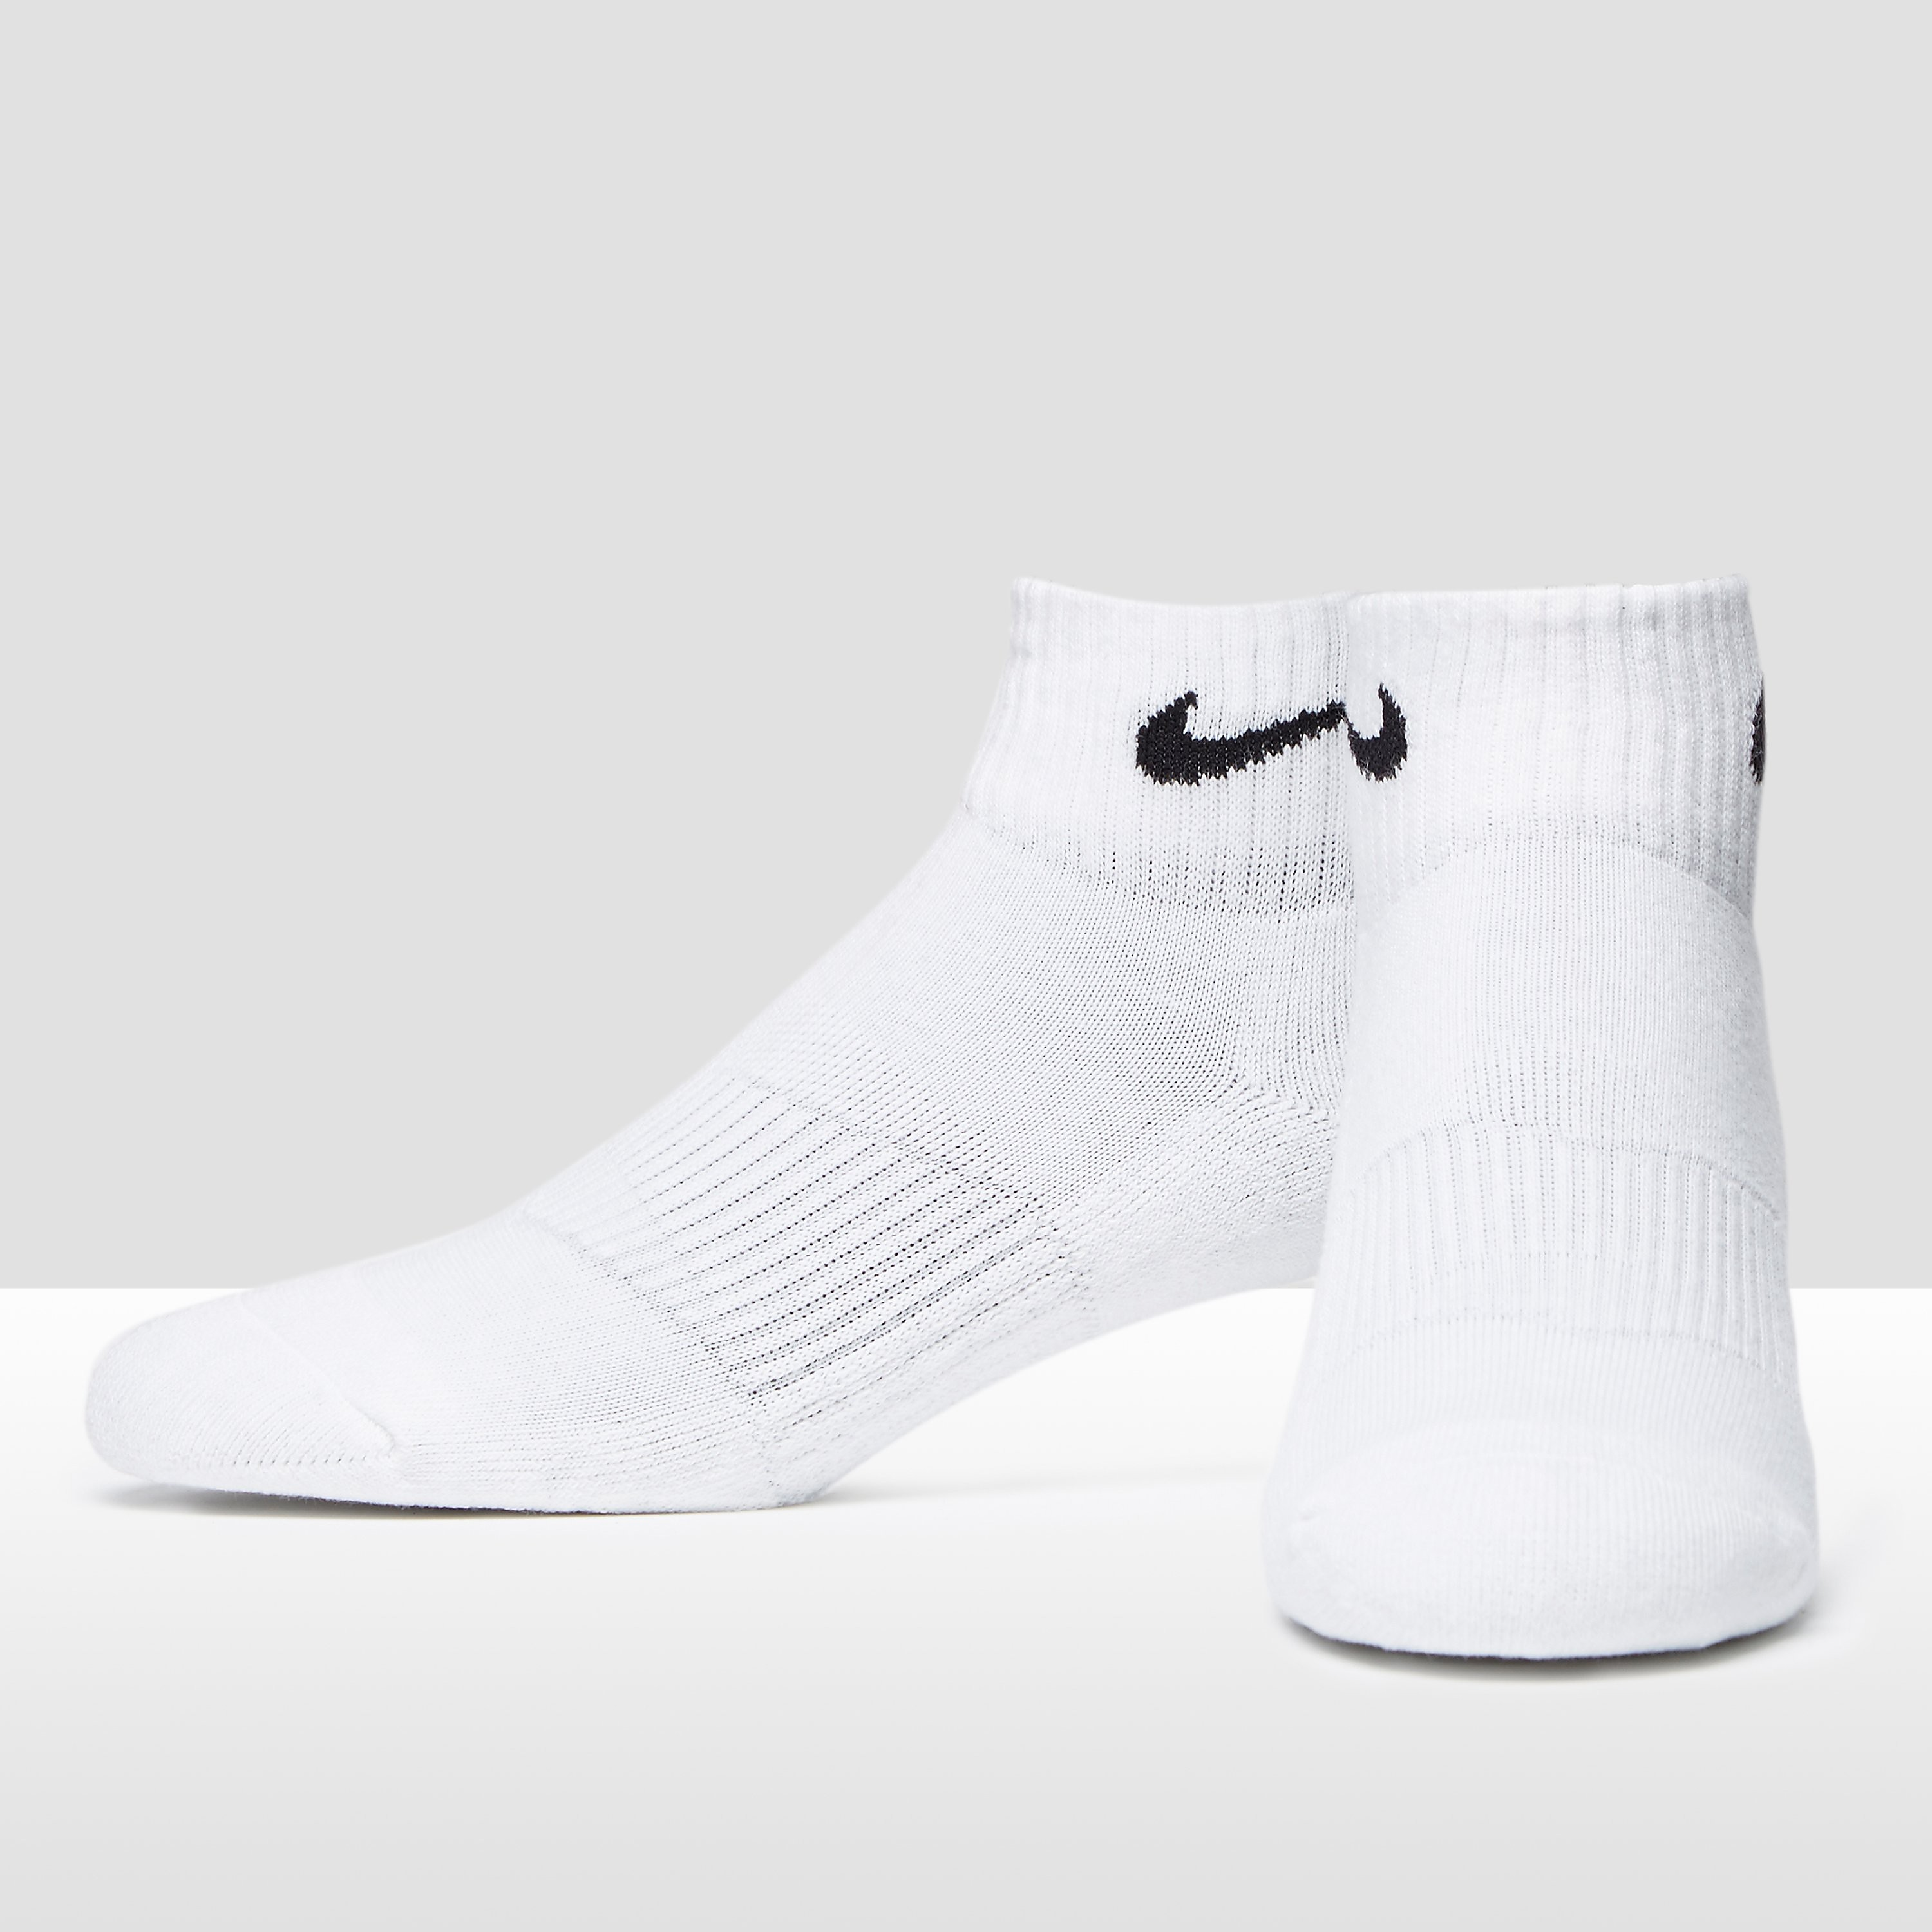 Nike 3PPK CUSHION QUARTER